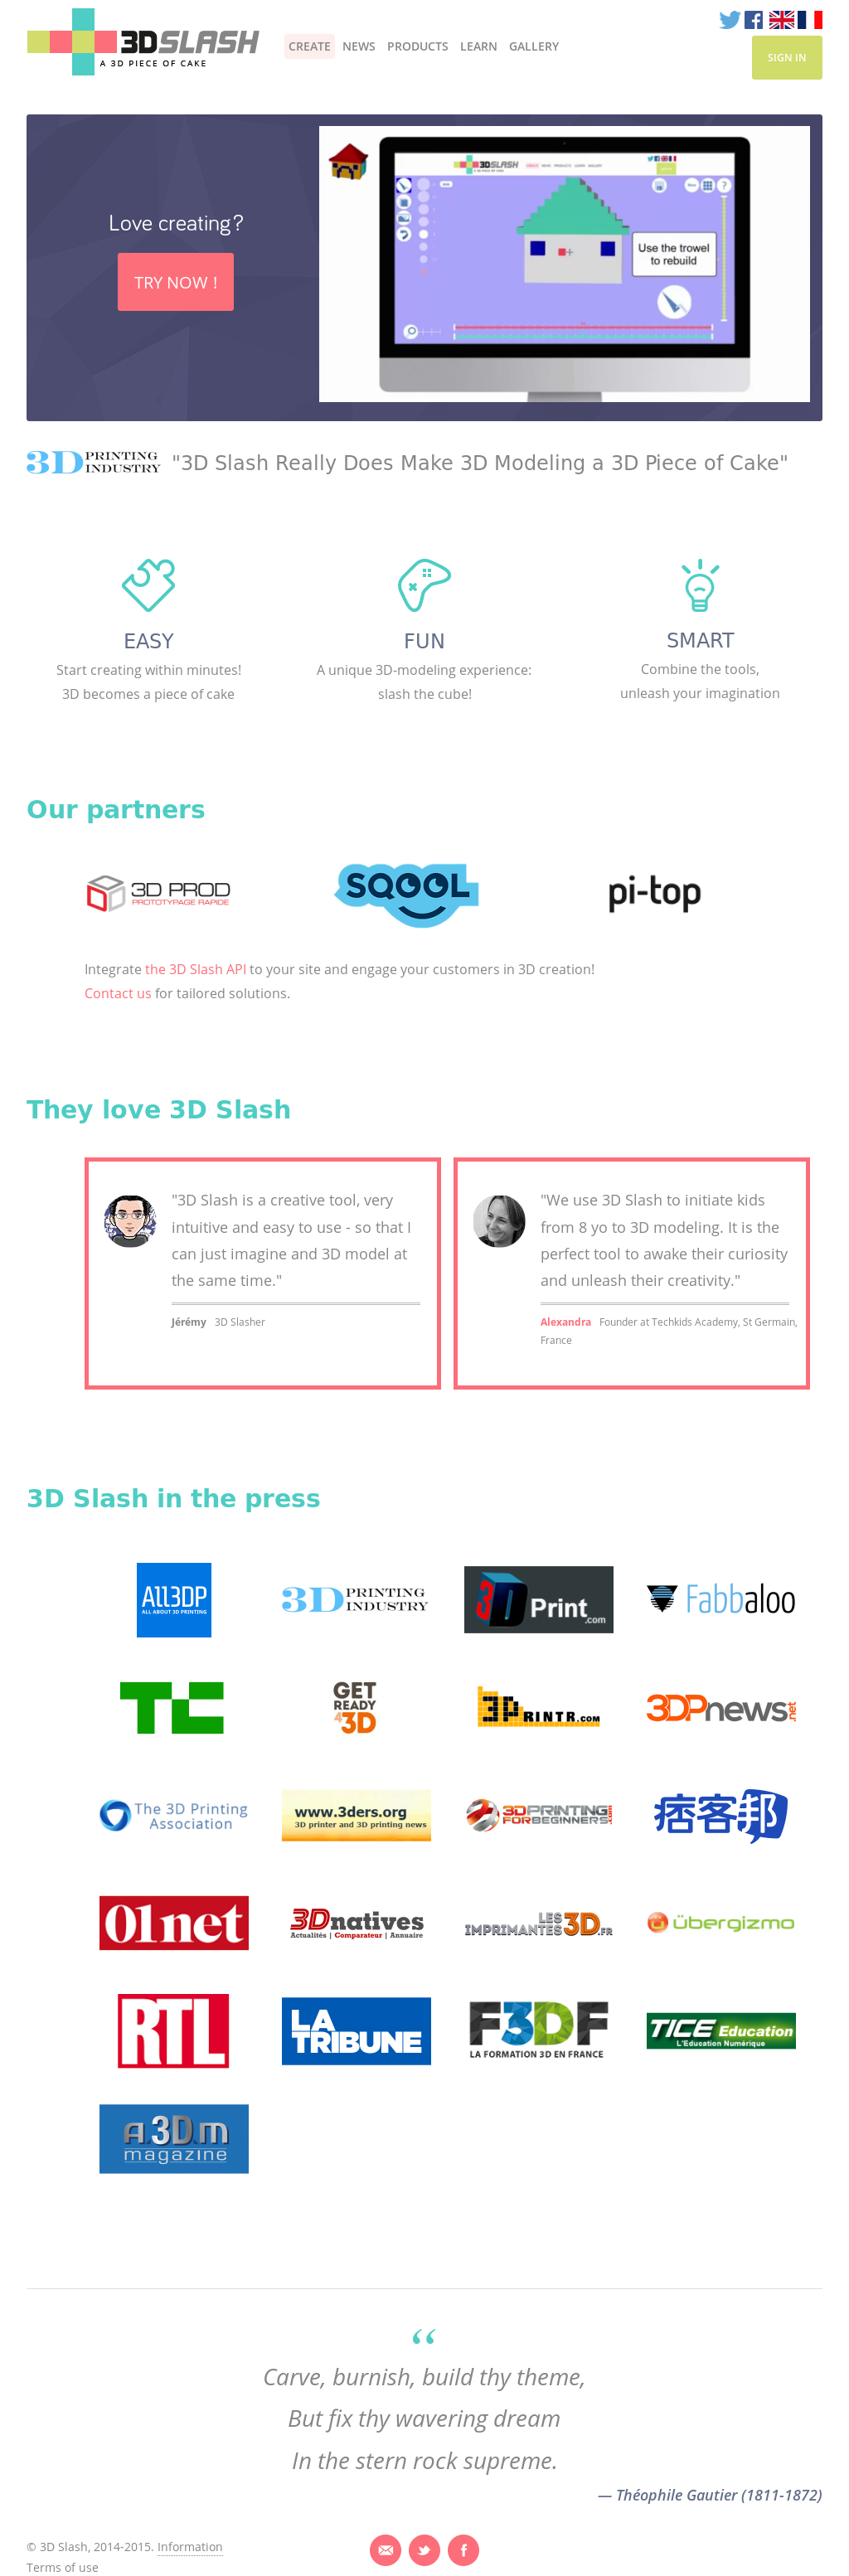 3D Slash Competitors, Revenue and Employees - Owler Company